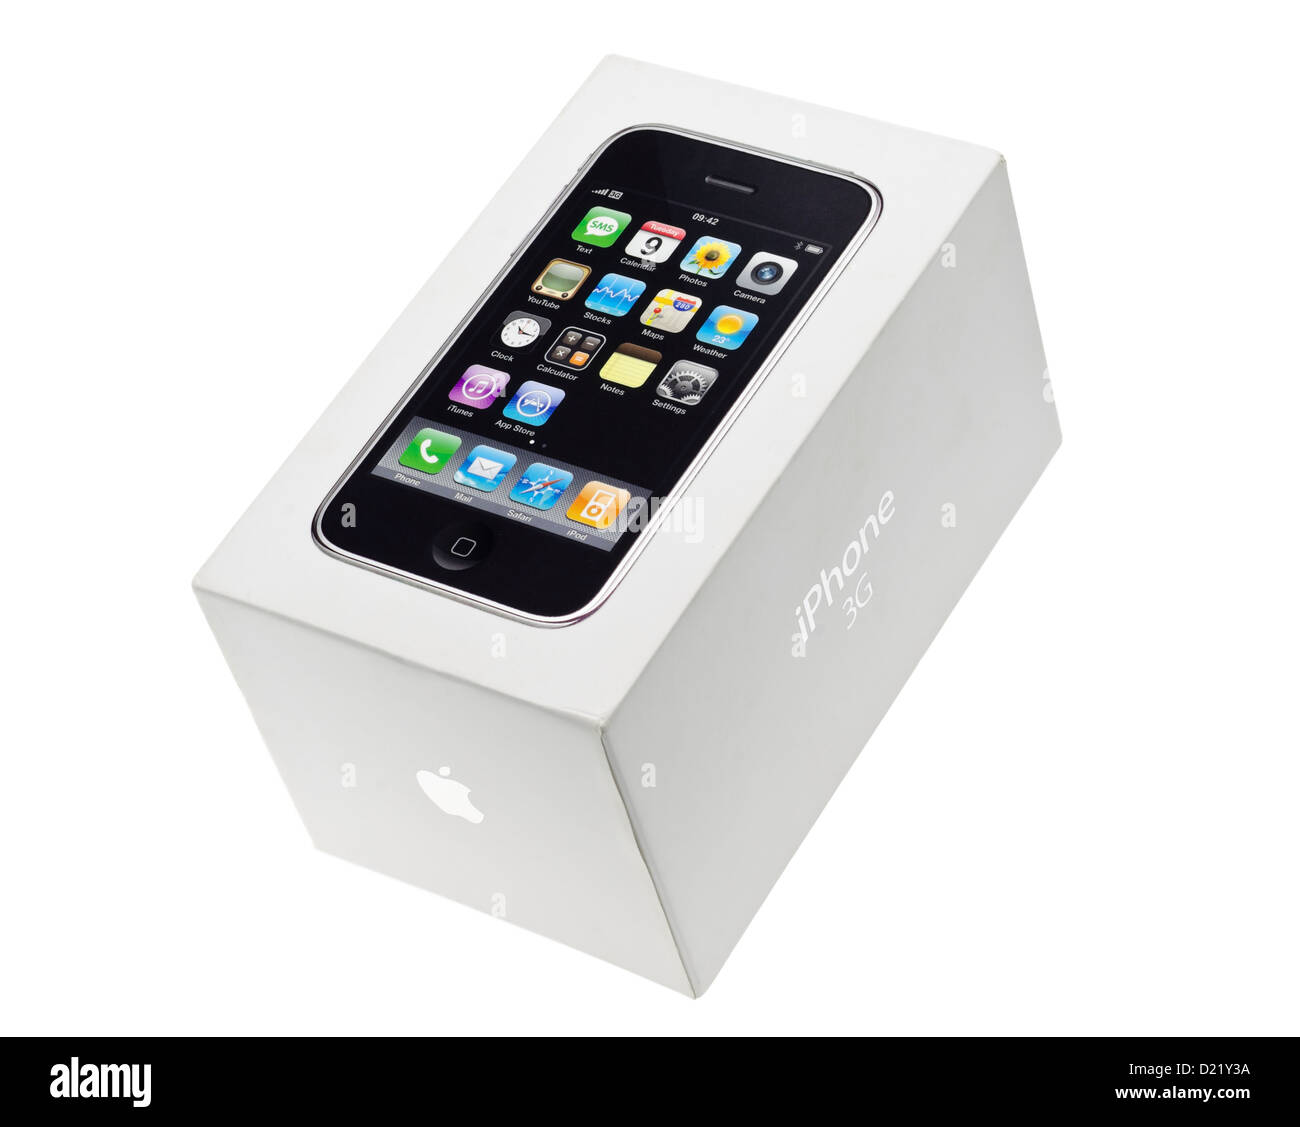 Apple Iphone 3G Box Stock Photo Royalty Free Image 52903630